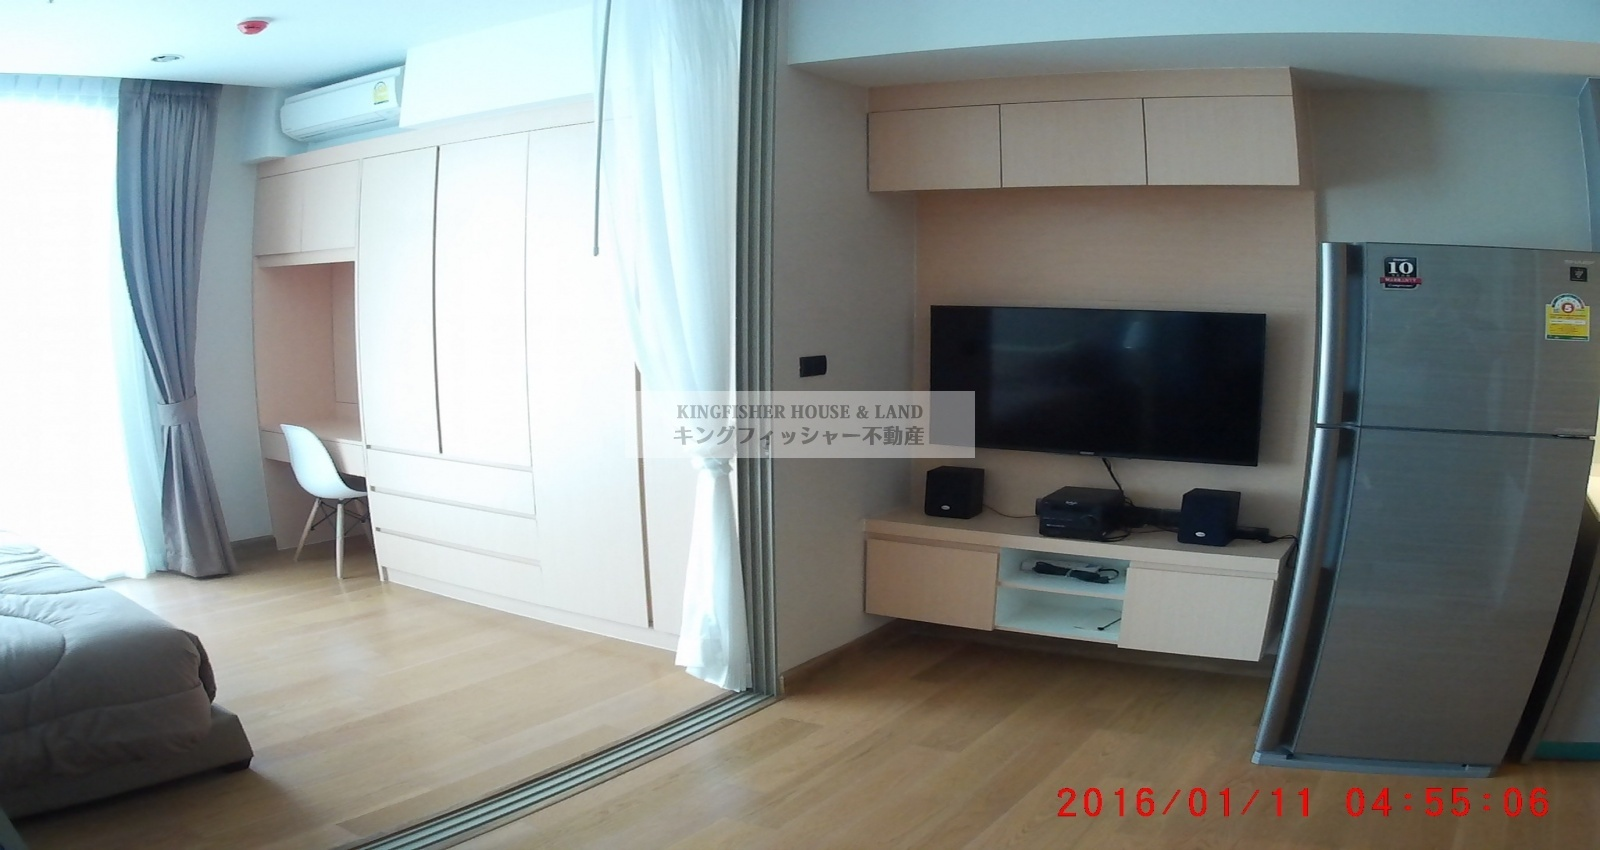 1 Bedrooms, Condominium, For Rent, 1 Bathrooms, Listing ID 1251, Sriracha, Thailand, 20110,